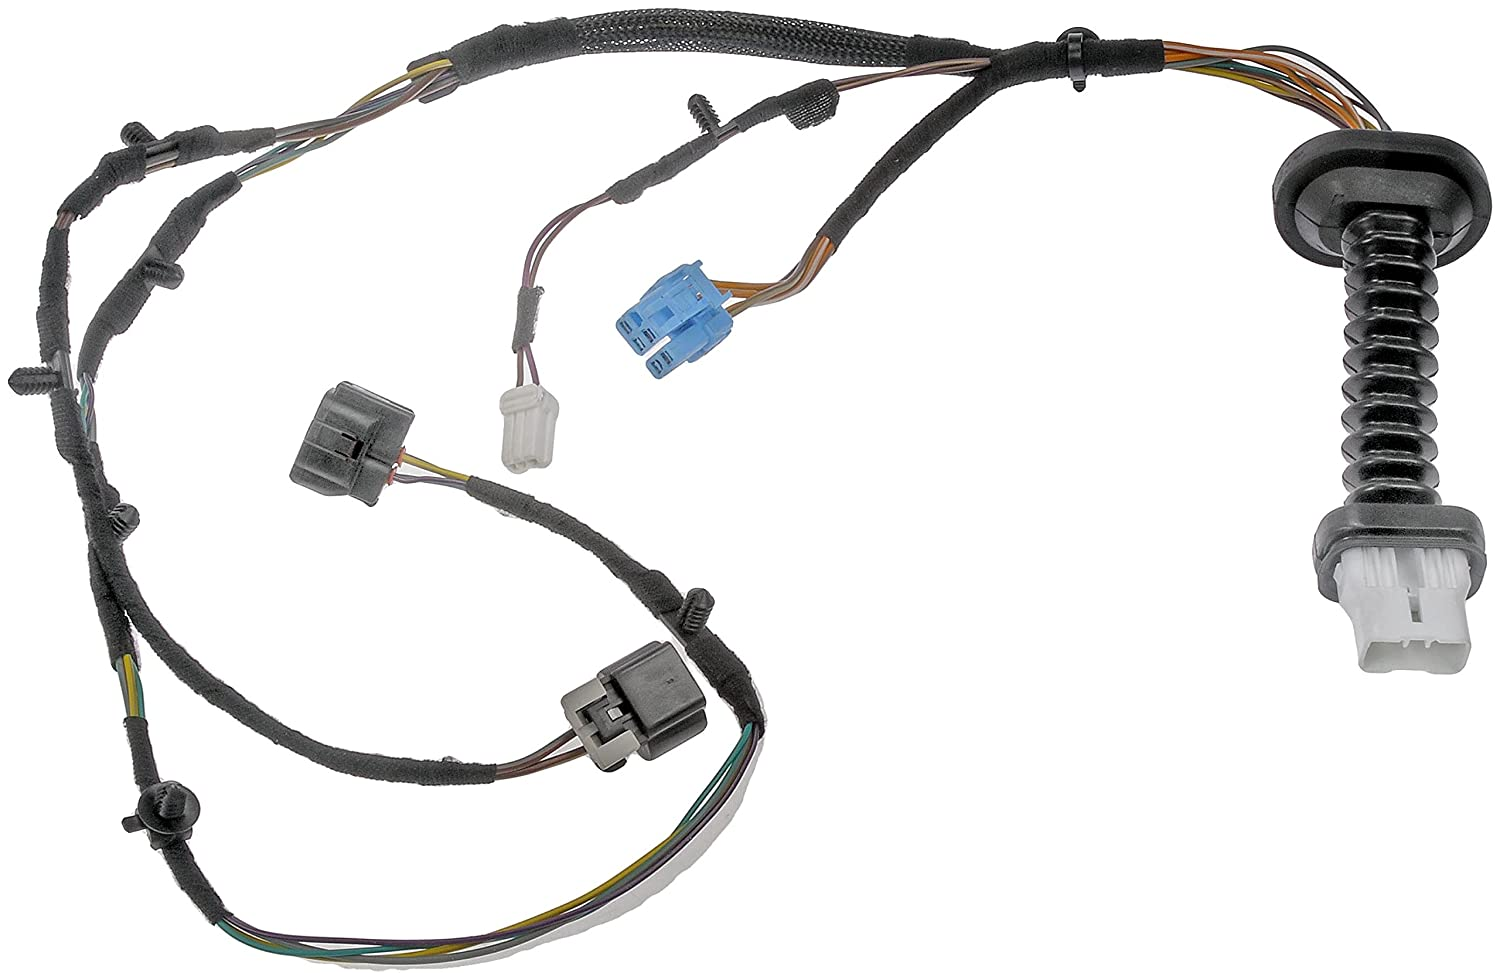 81c1LCEp7lL._SL1500_ amazon com dorman 645 506 door harness with connectors automotive 2007 dodge ram rear door wiring harness at webbmarketing.co